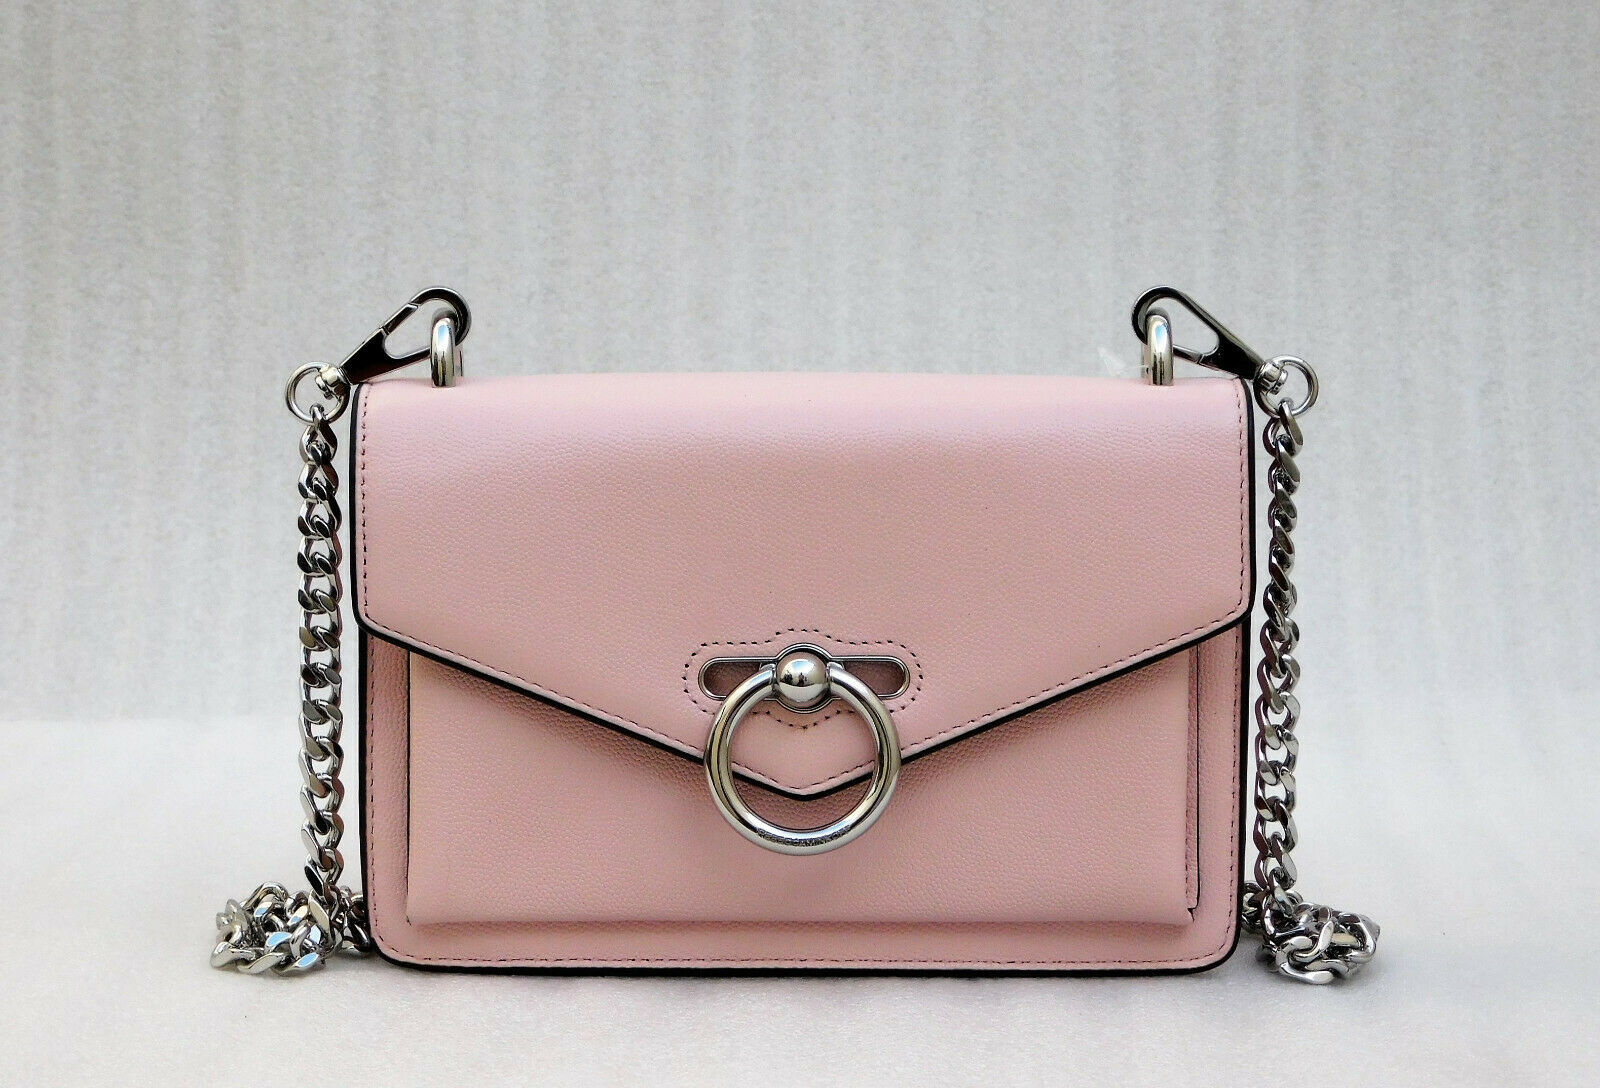 Primary image for Rebecca Minkoff Jean Leather Crossbody Bag - Pink (Retail price - $198)